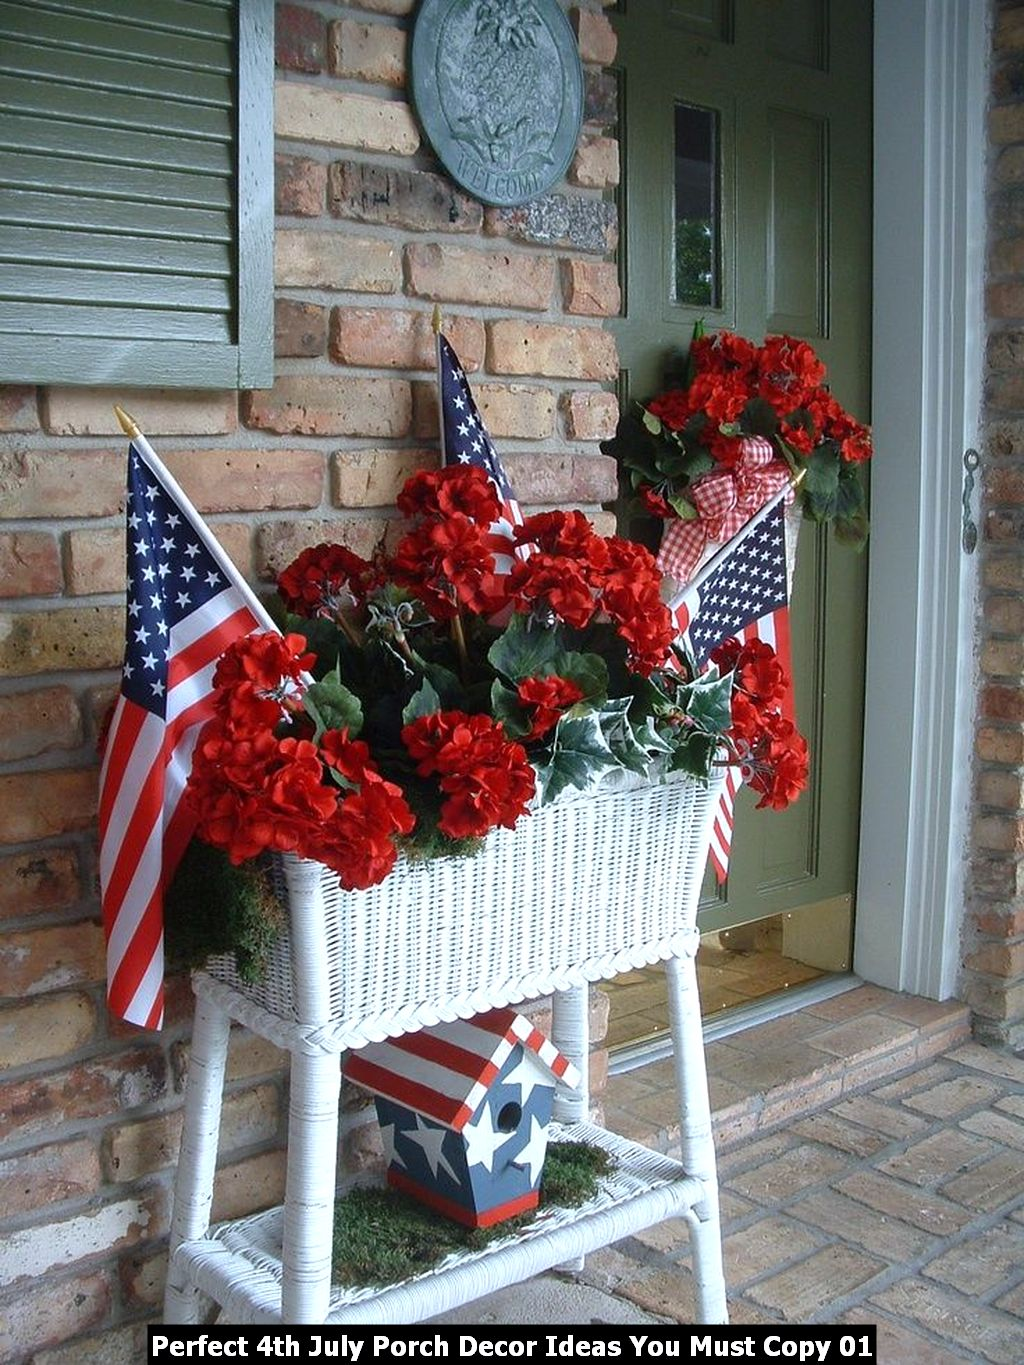 Perfect 4th July Porch Decor Ideas You Must Copy 01